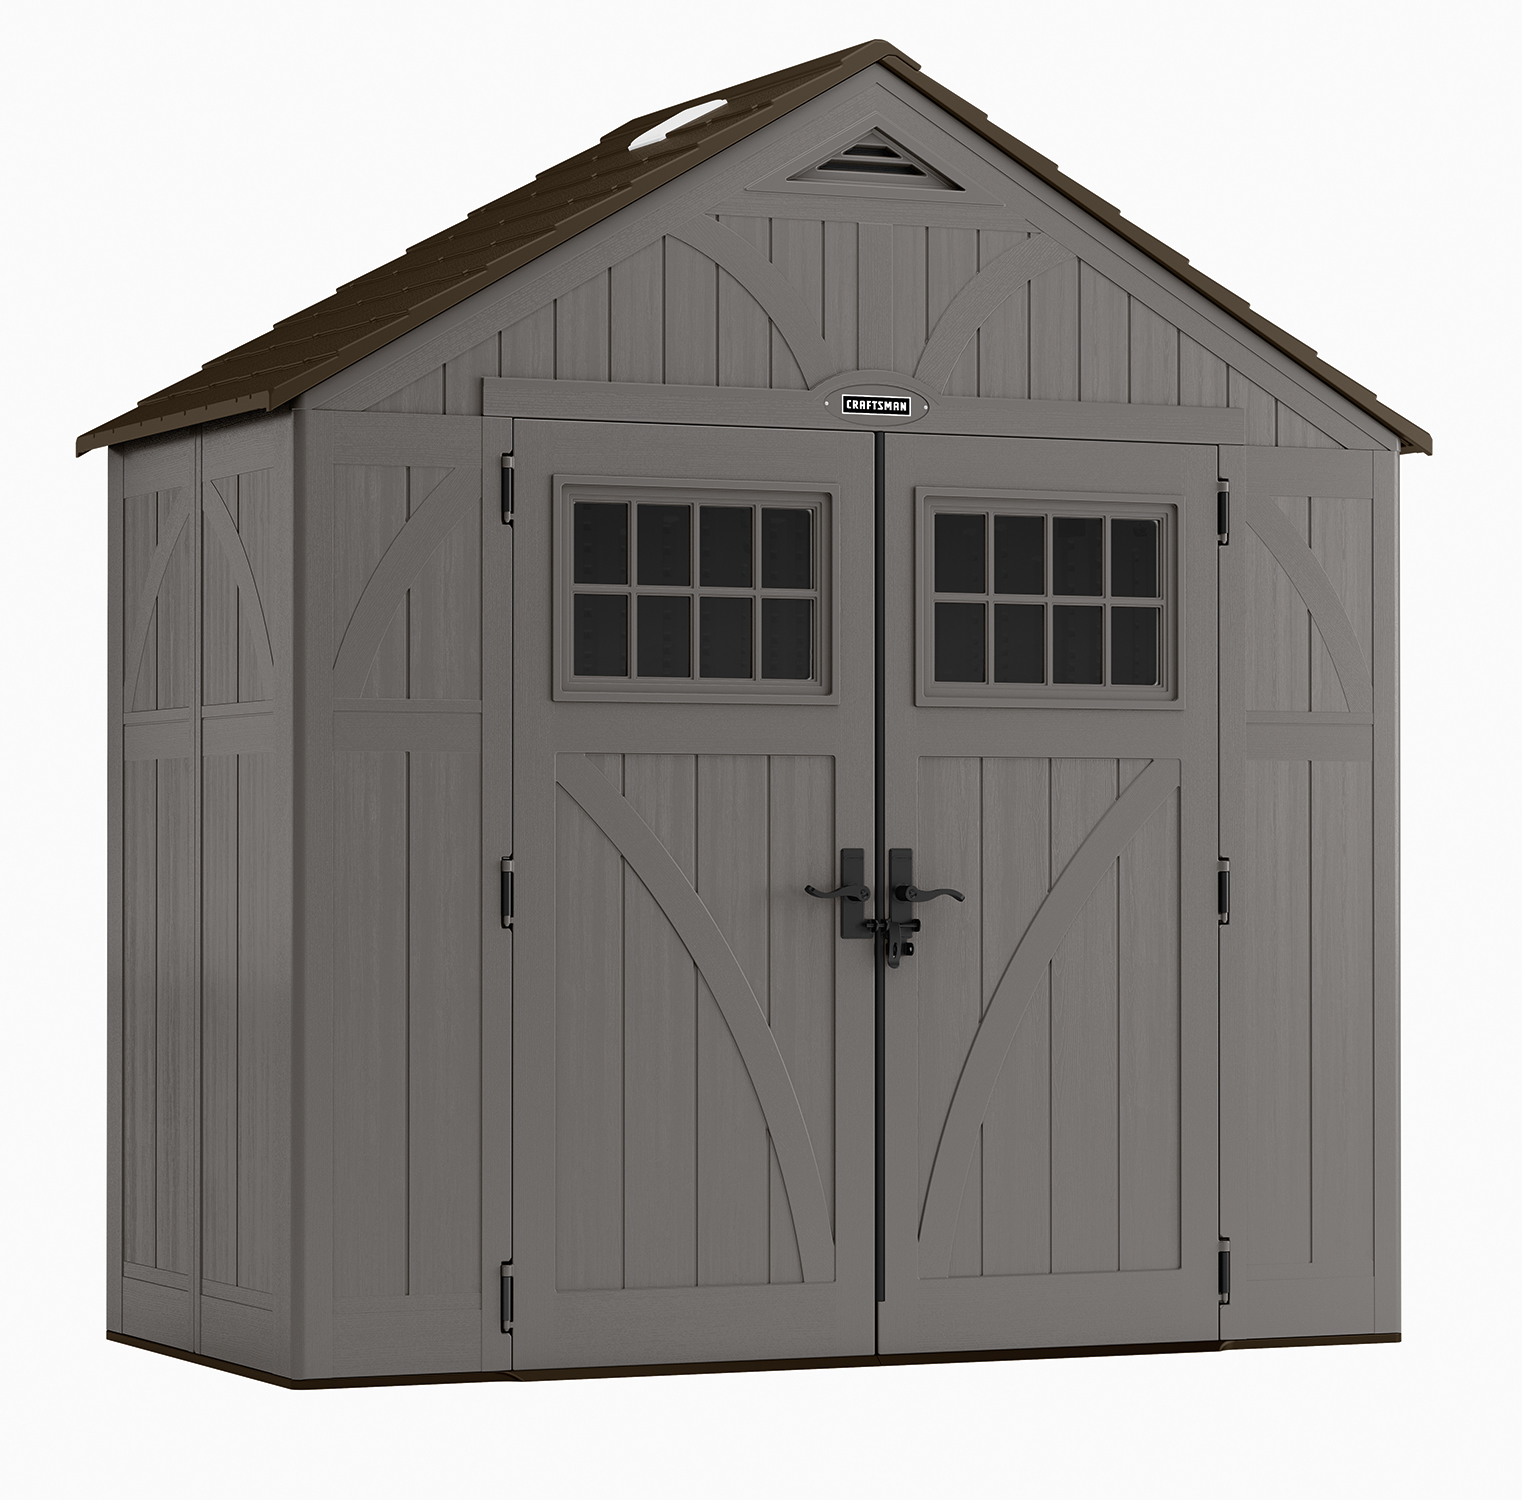 Garden Sheds Costco sheds: costco sheds | rubbermaid storage shed accessories